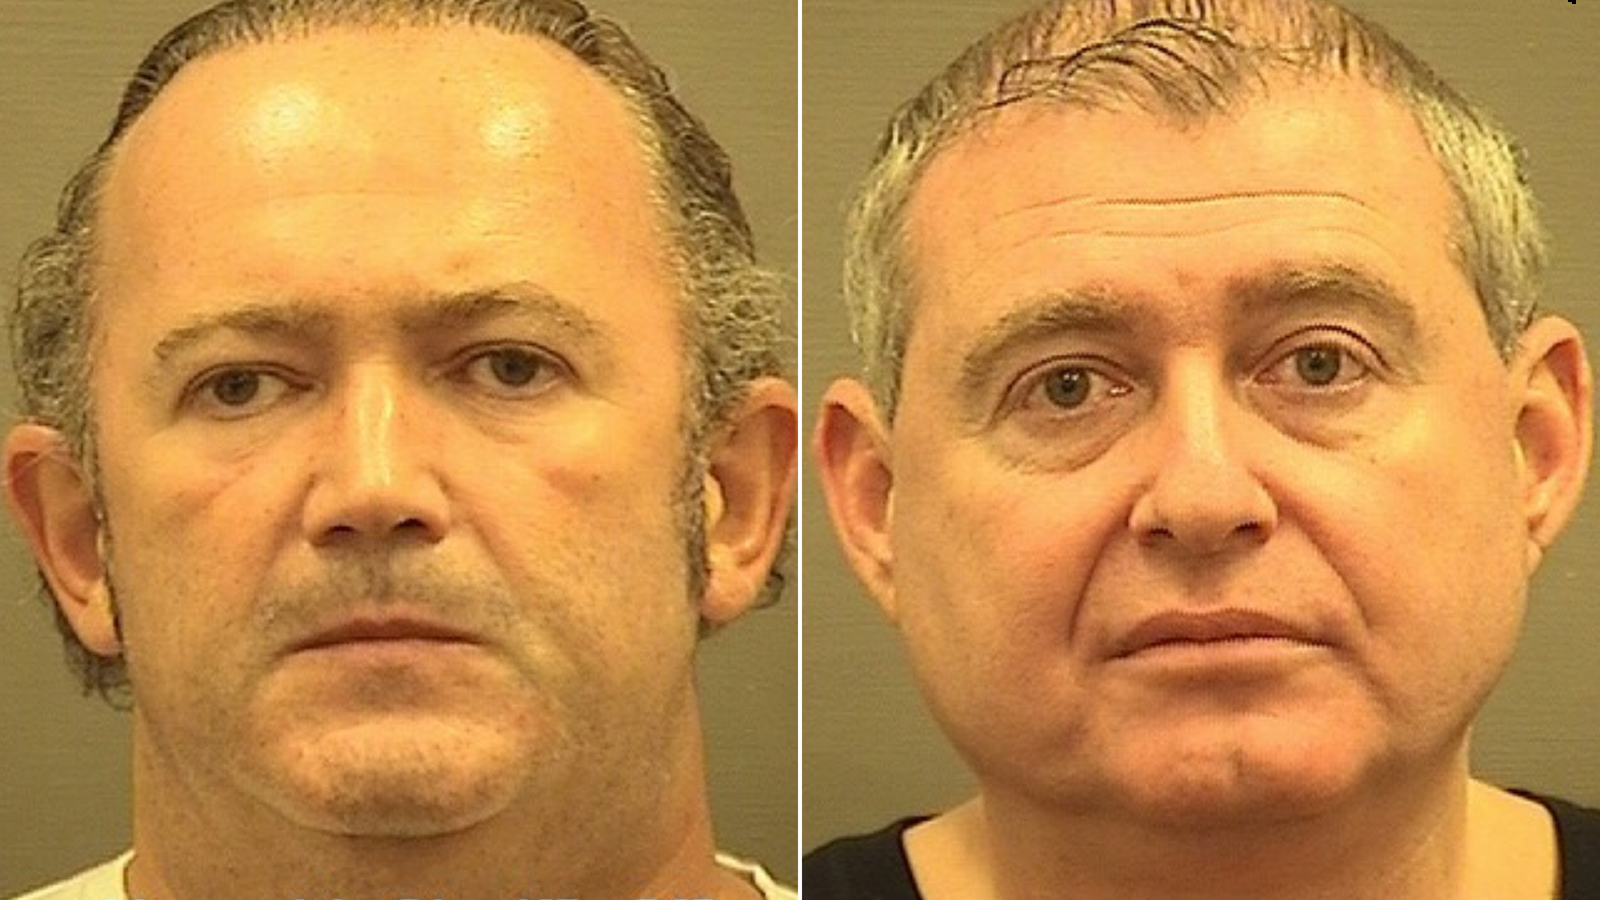 Igor Fruman, left, and Lev Parnas were arrested and charged with campaign finance violations.